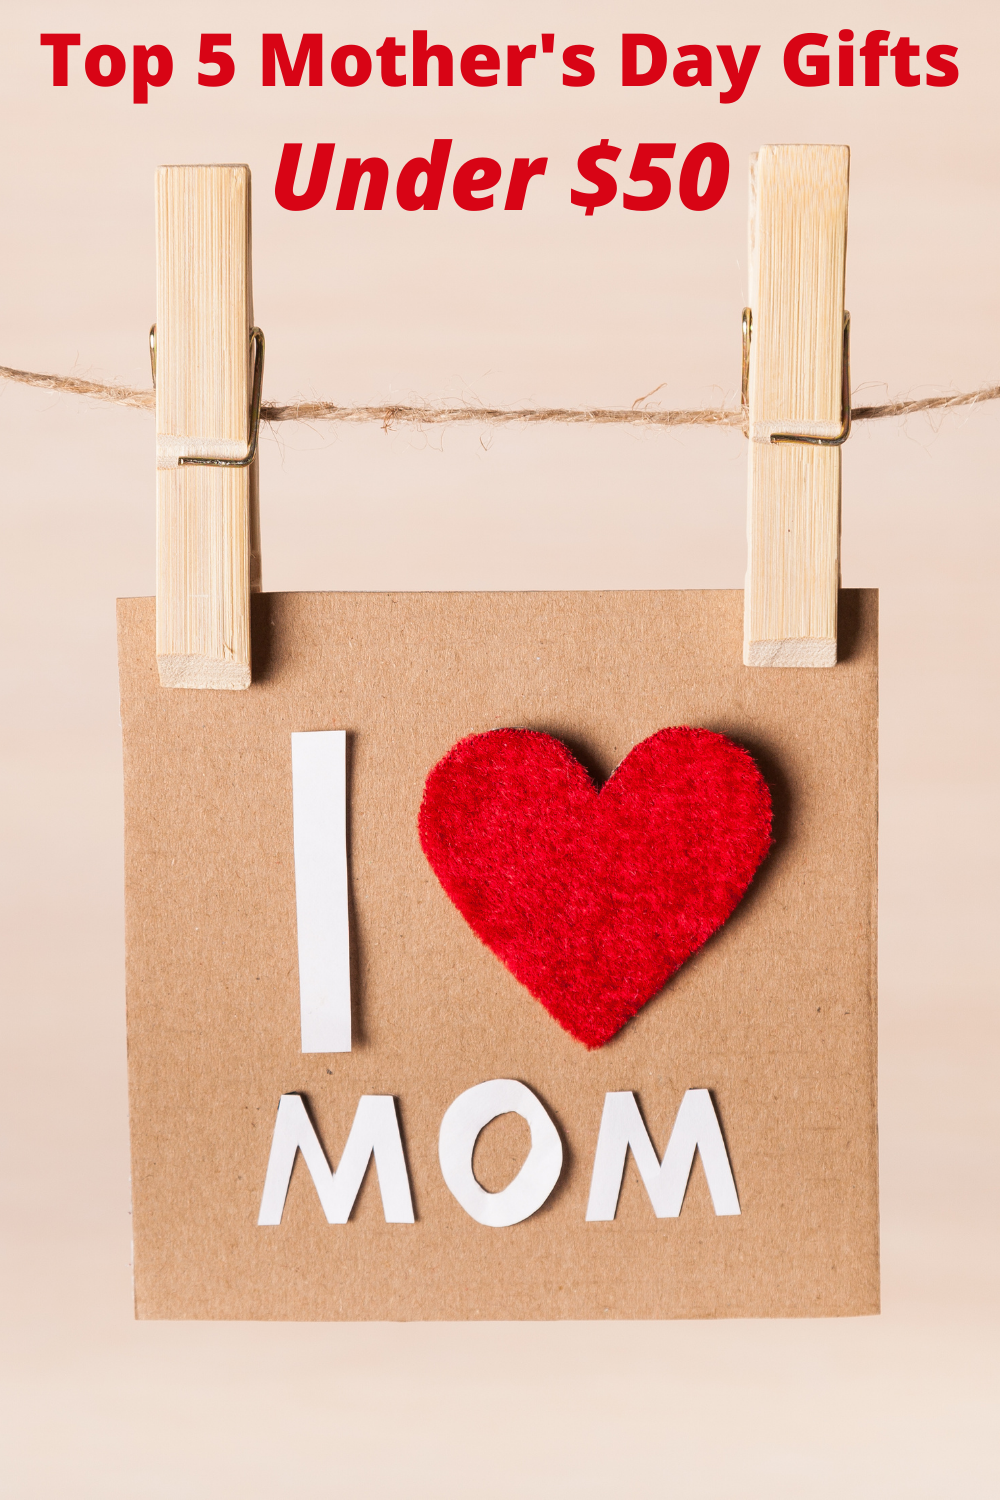 Mother's Day gifts card with heart and text cutout